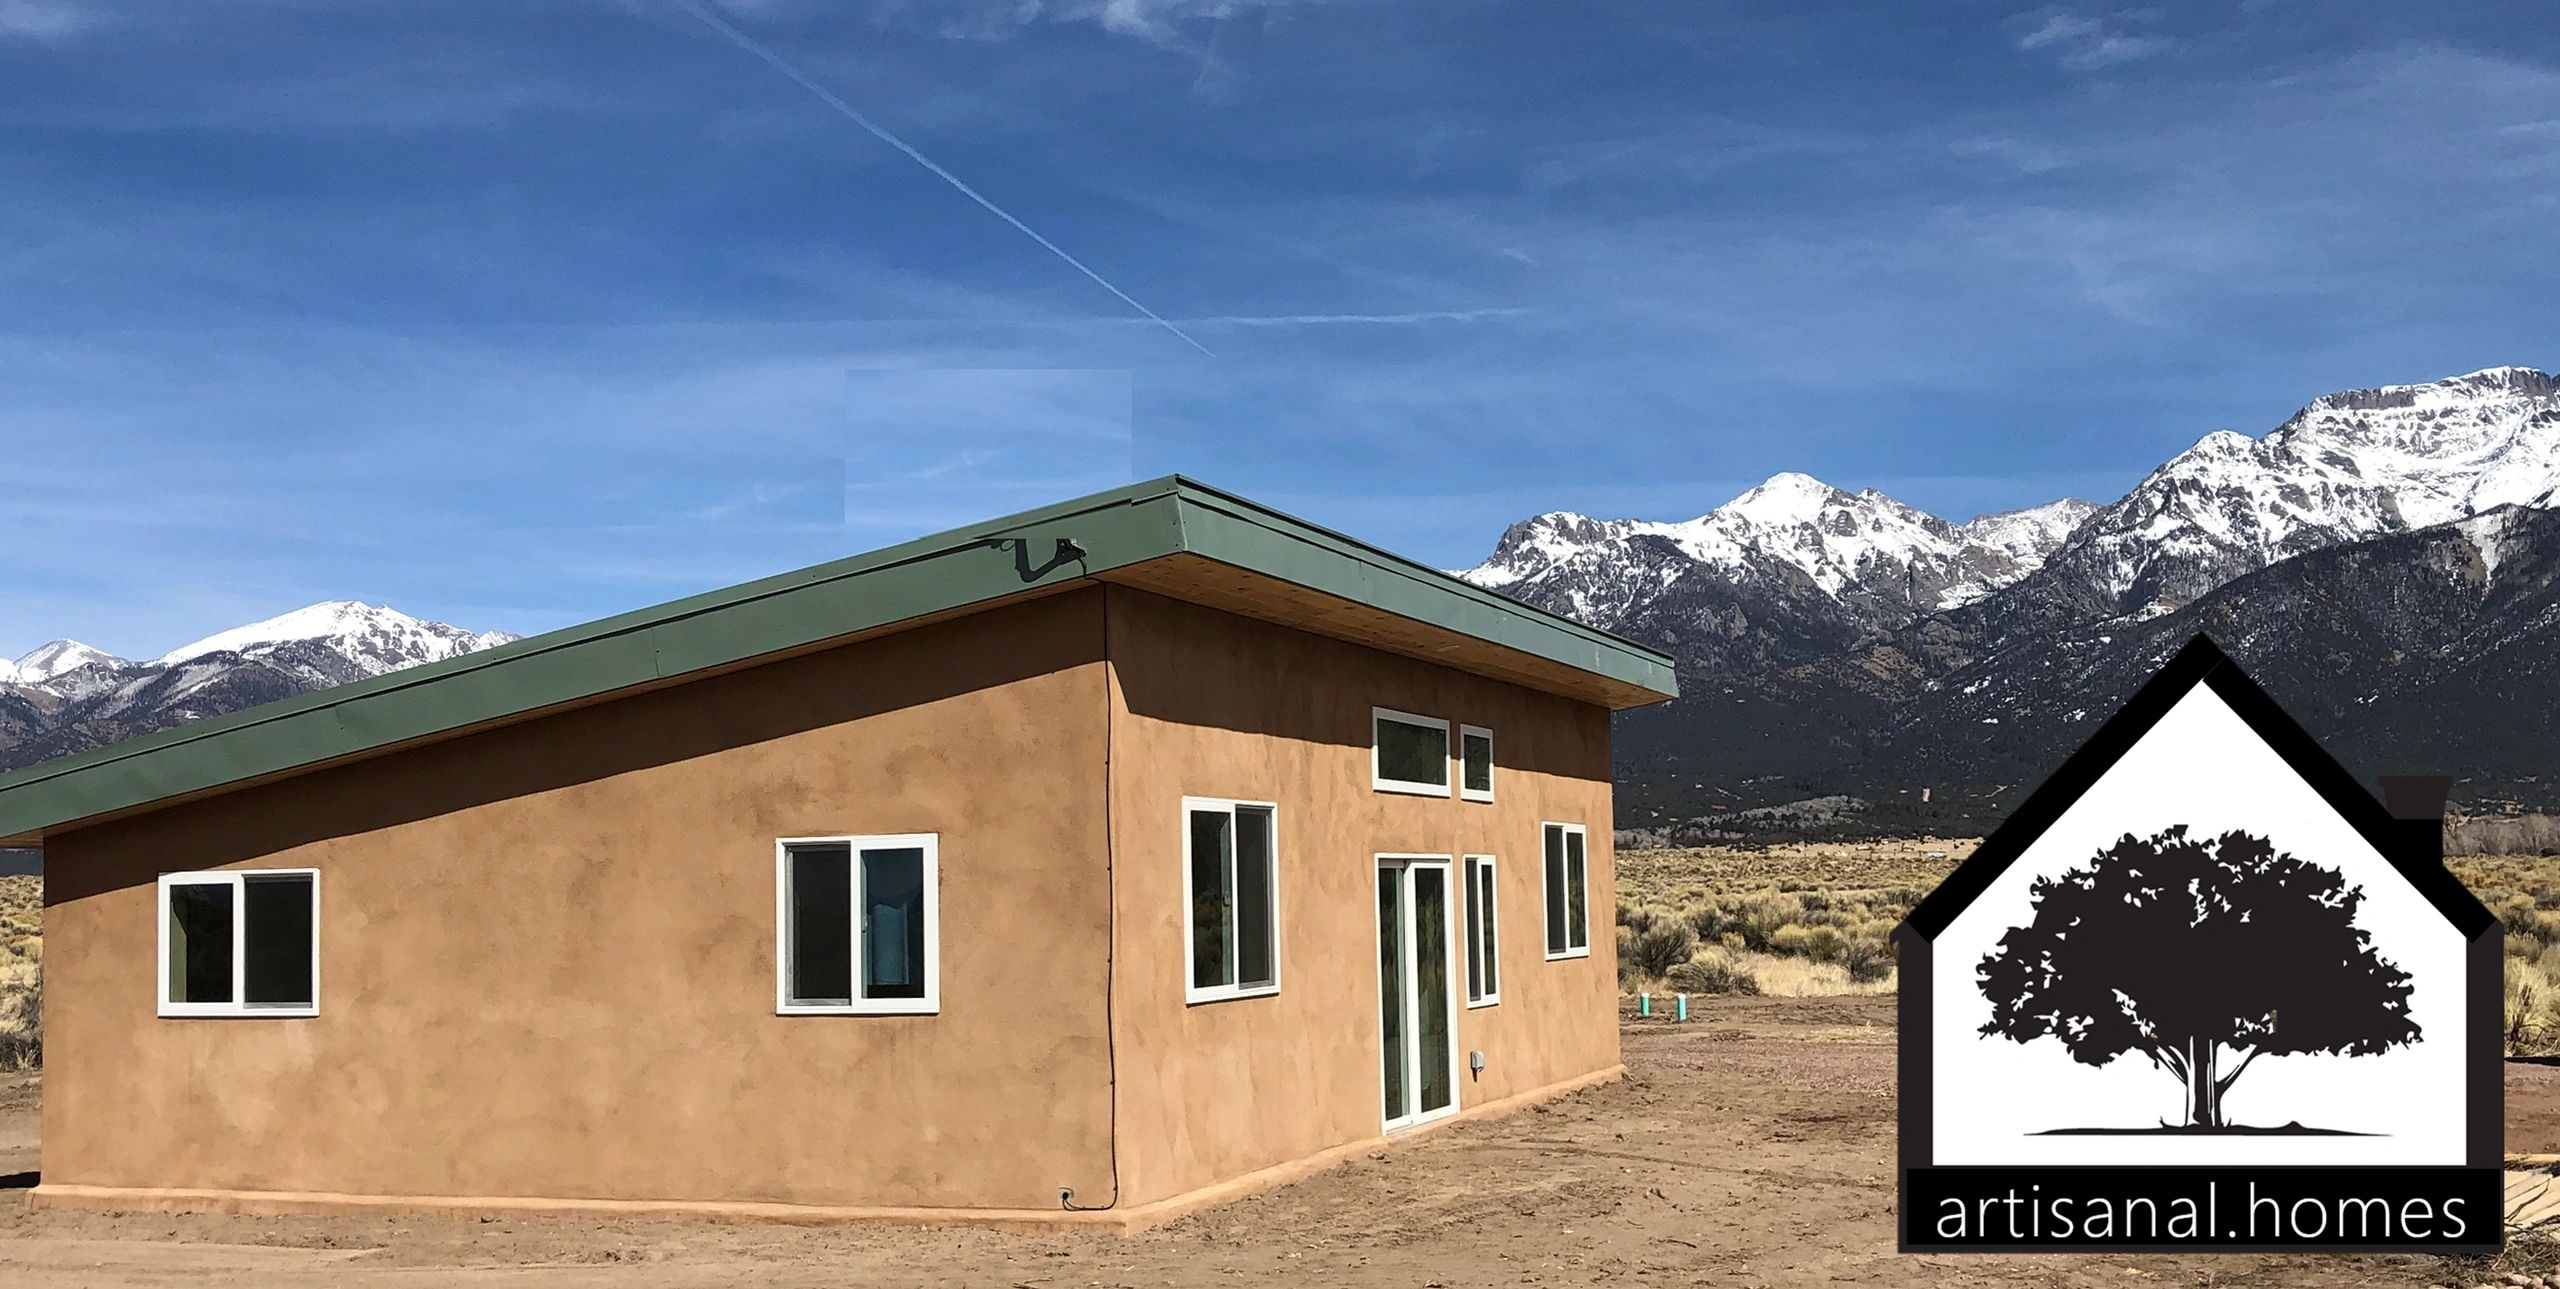 Crestone Colorado Homes Builder Contractor - Artisanal.Homes builds beautiful affordable SIP Homes .